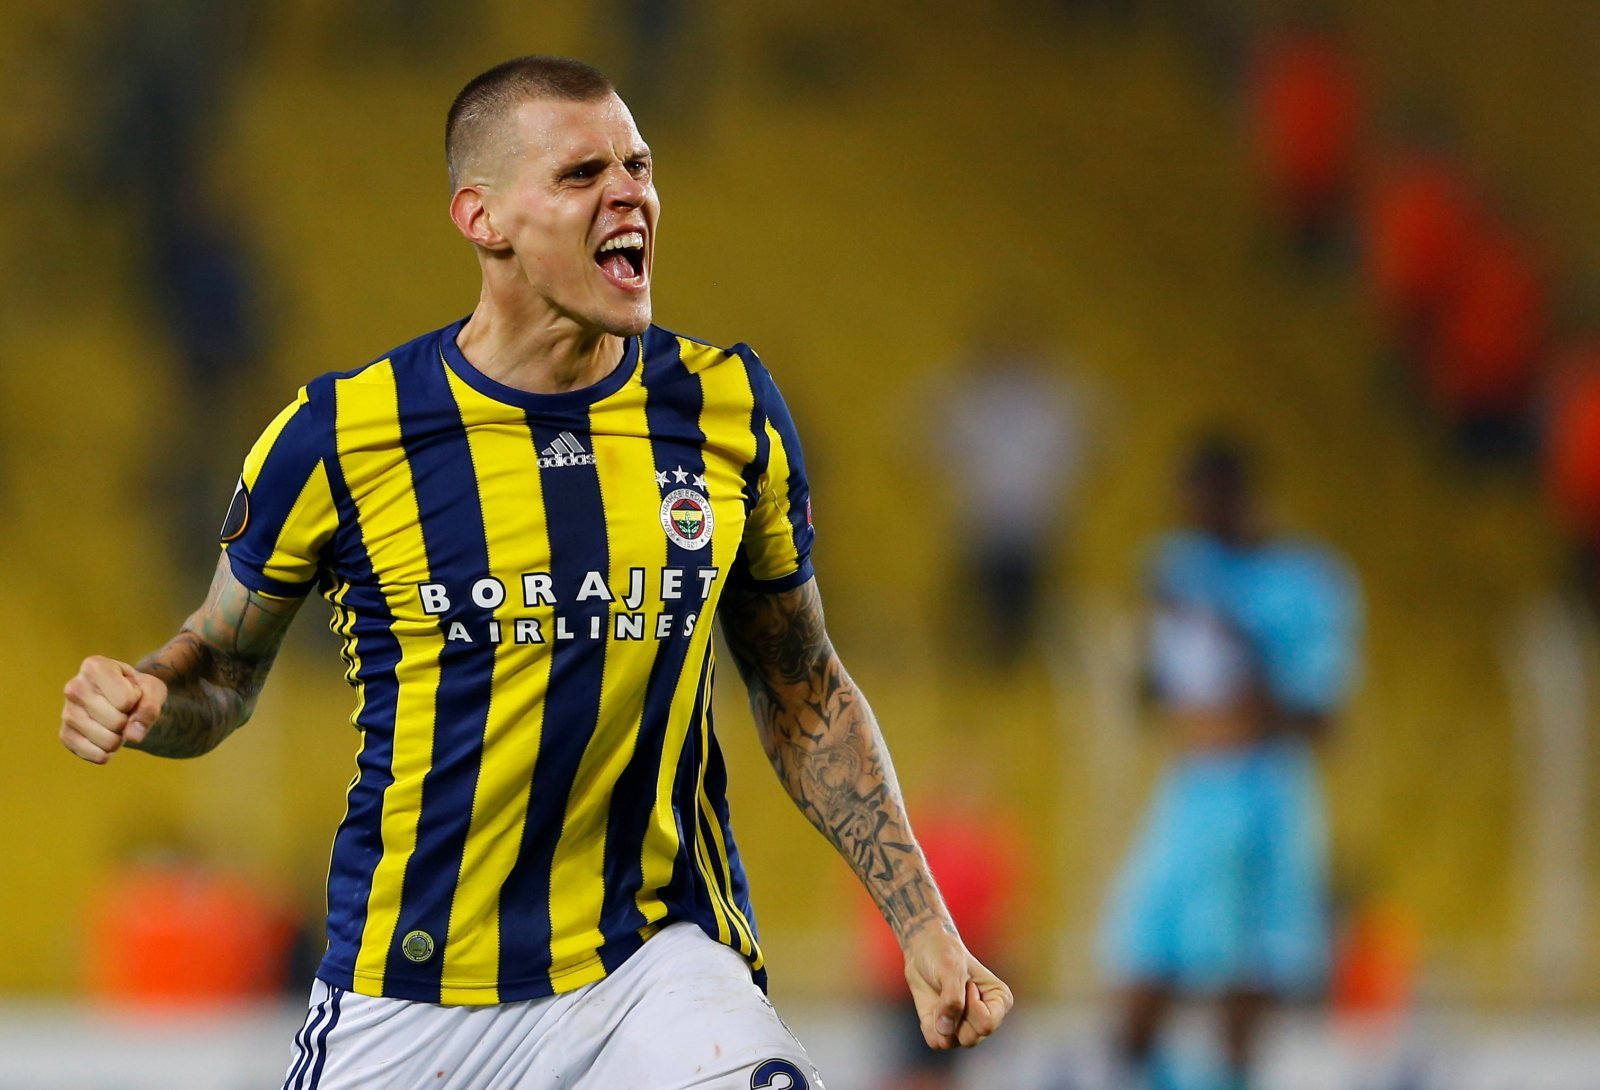 Rangers: Steven Gerrard will be crazy to sign former teammate Martin Skrtel